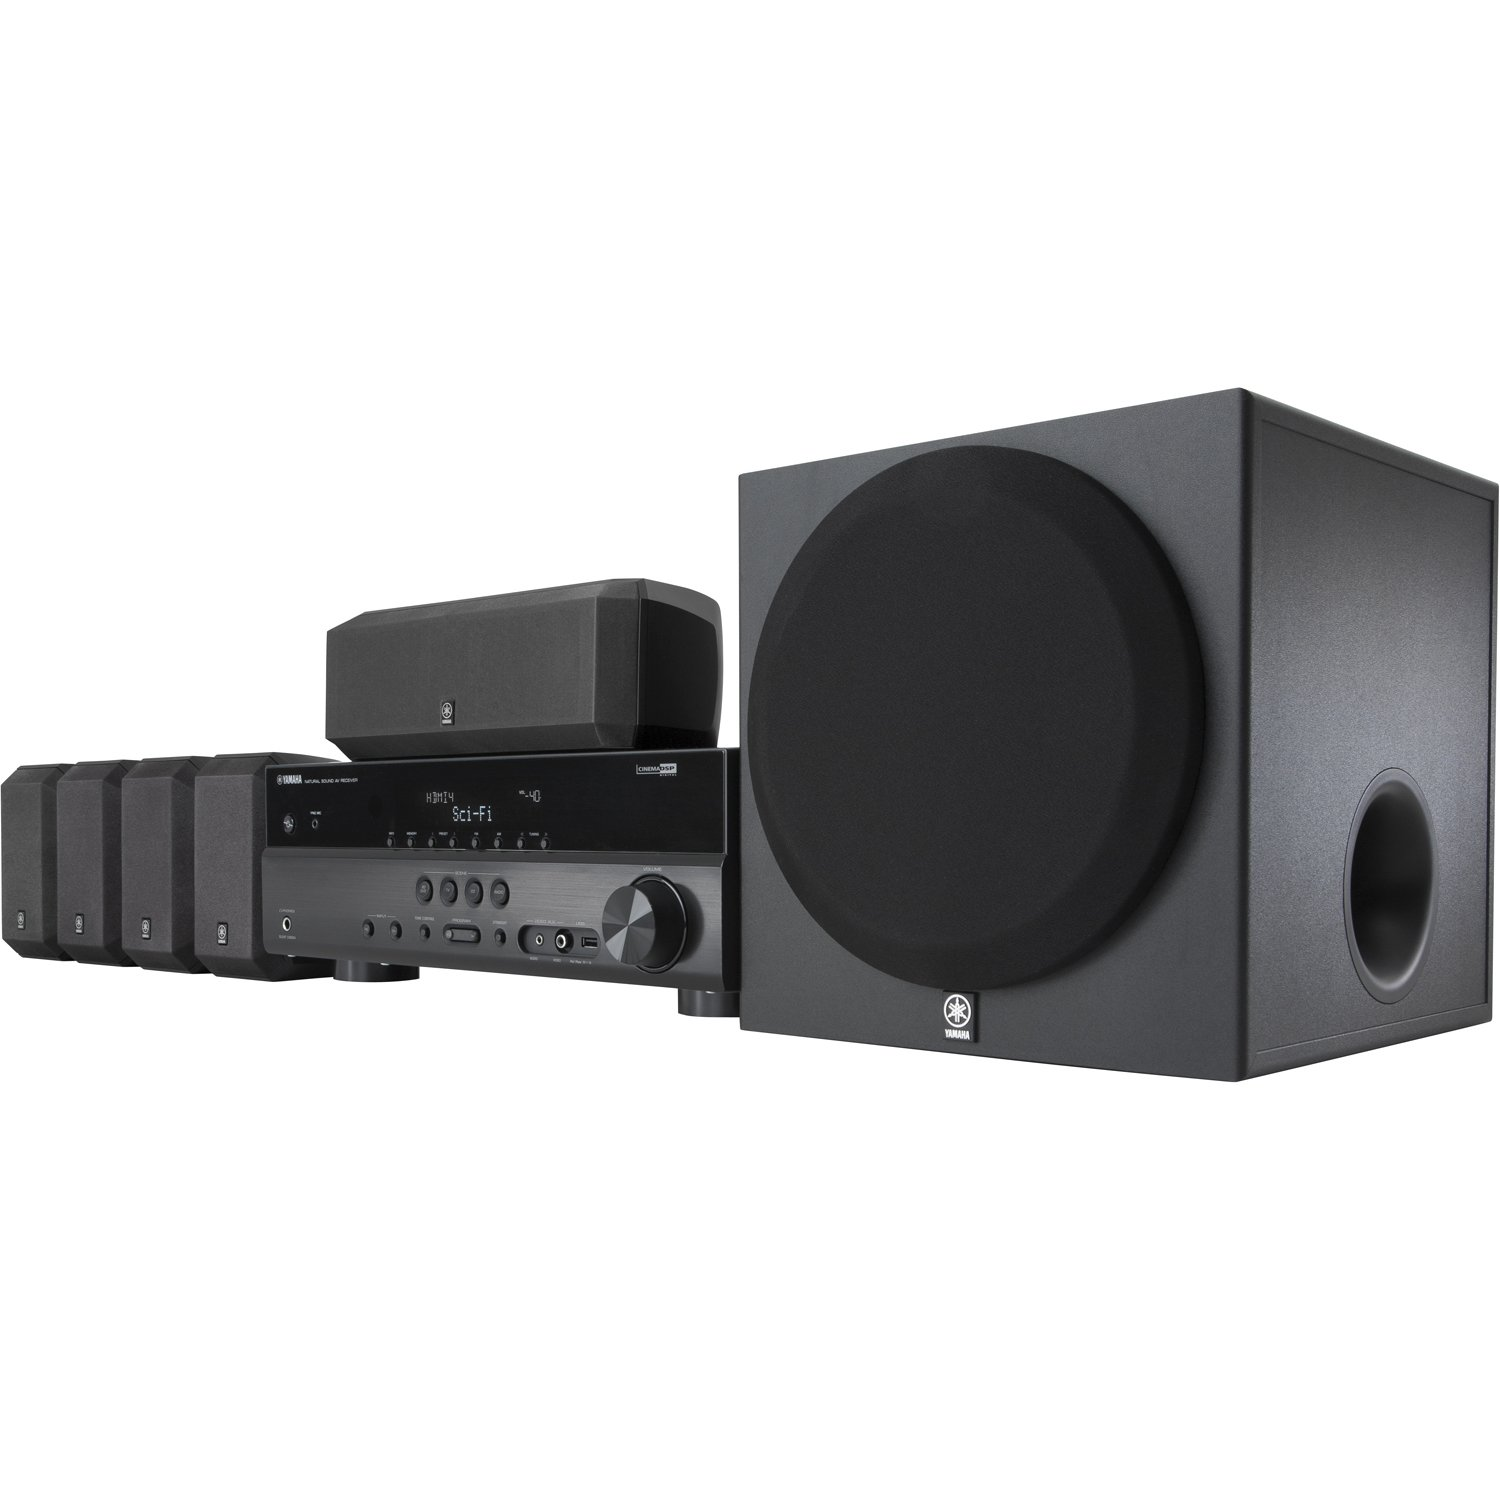 Yamaha YHT-397 5.1-Channel Home Theater System $248.88